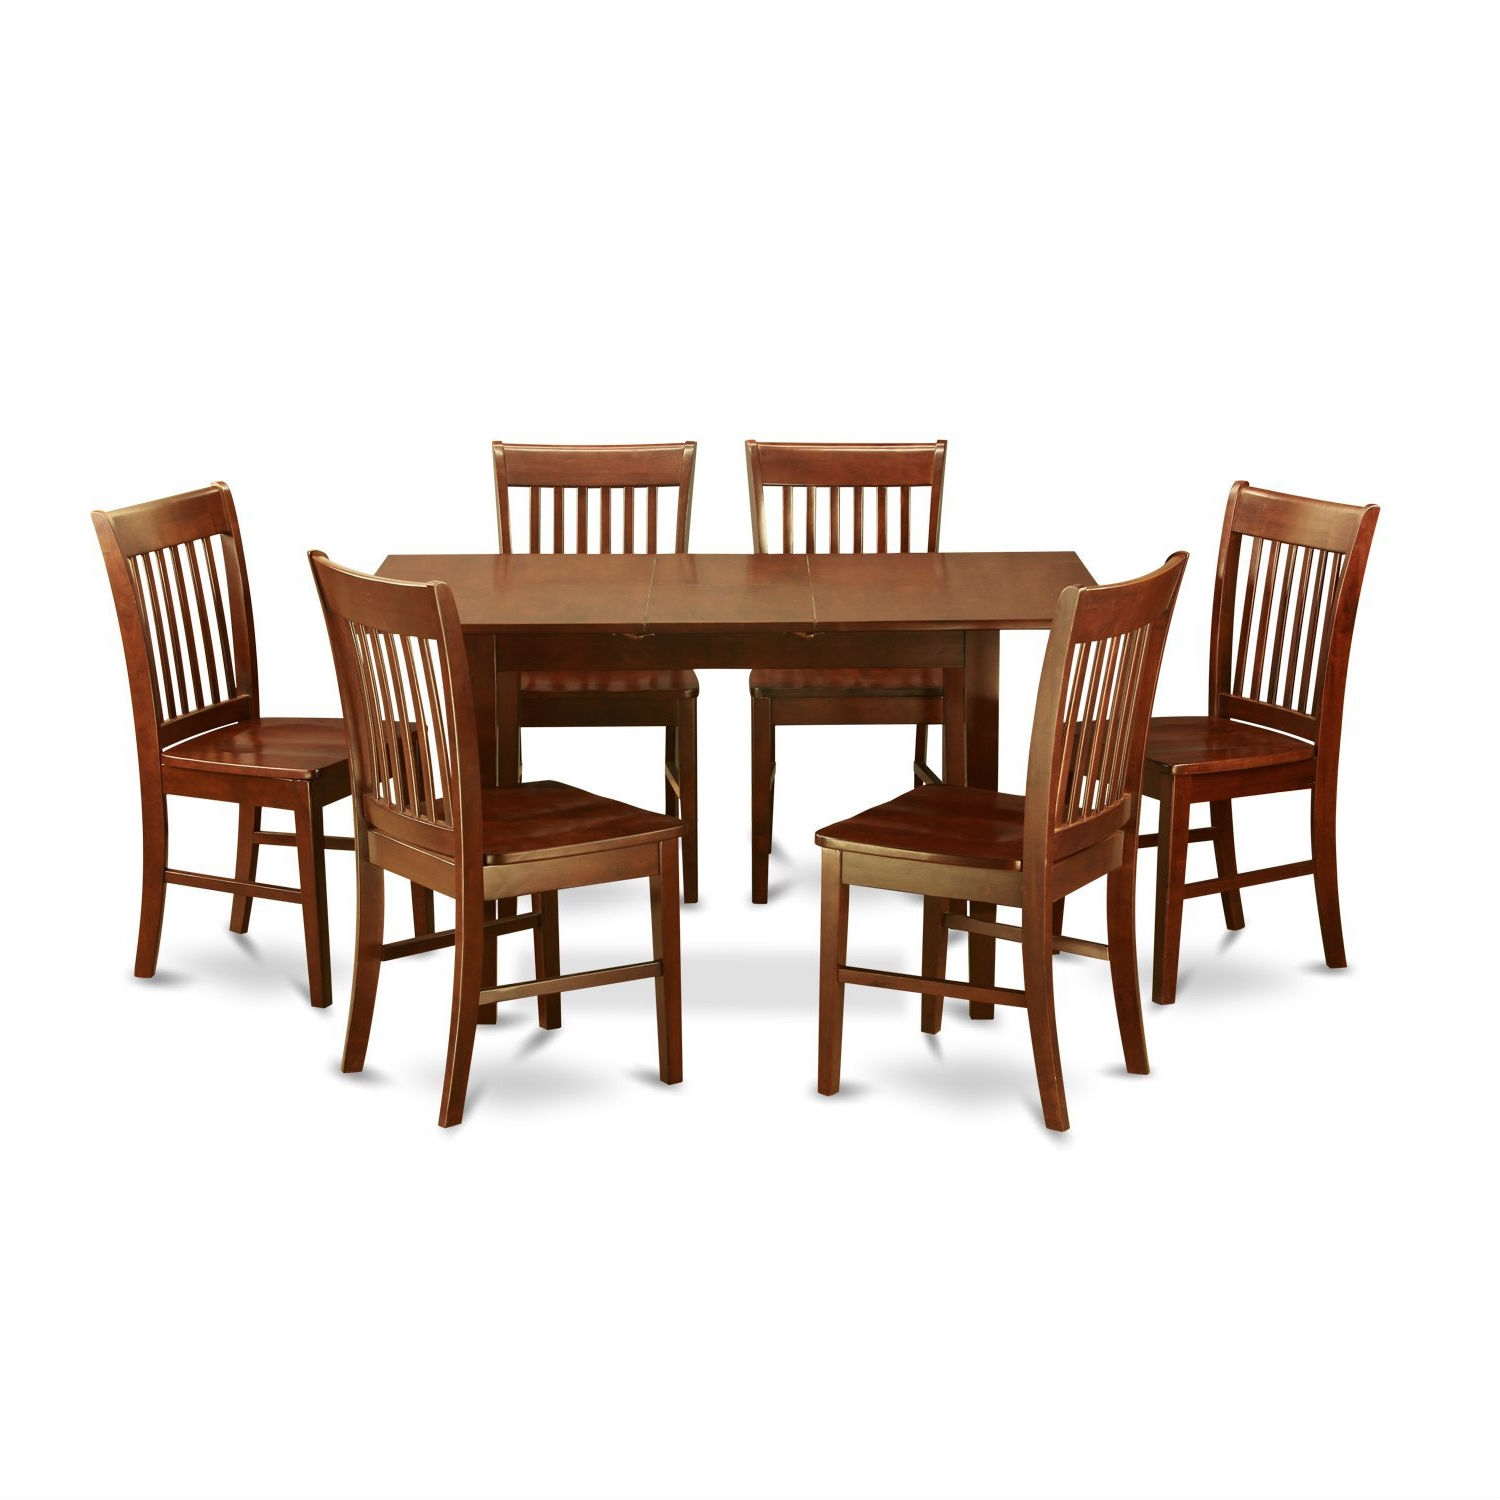 Mission Style 7 Piece Dining Set In Mahogany Wood Finish